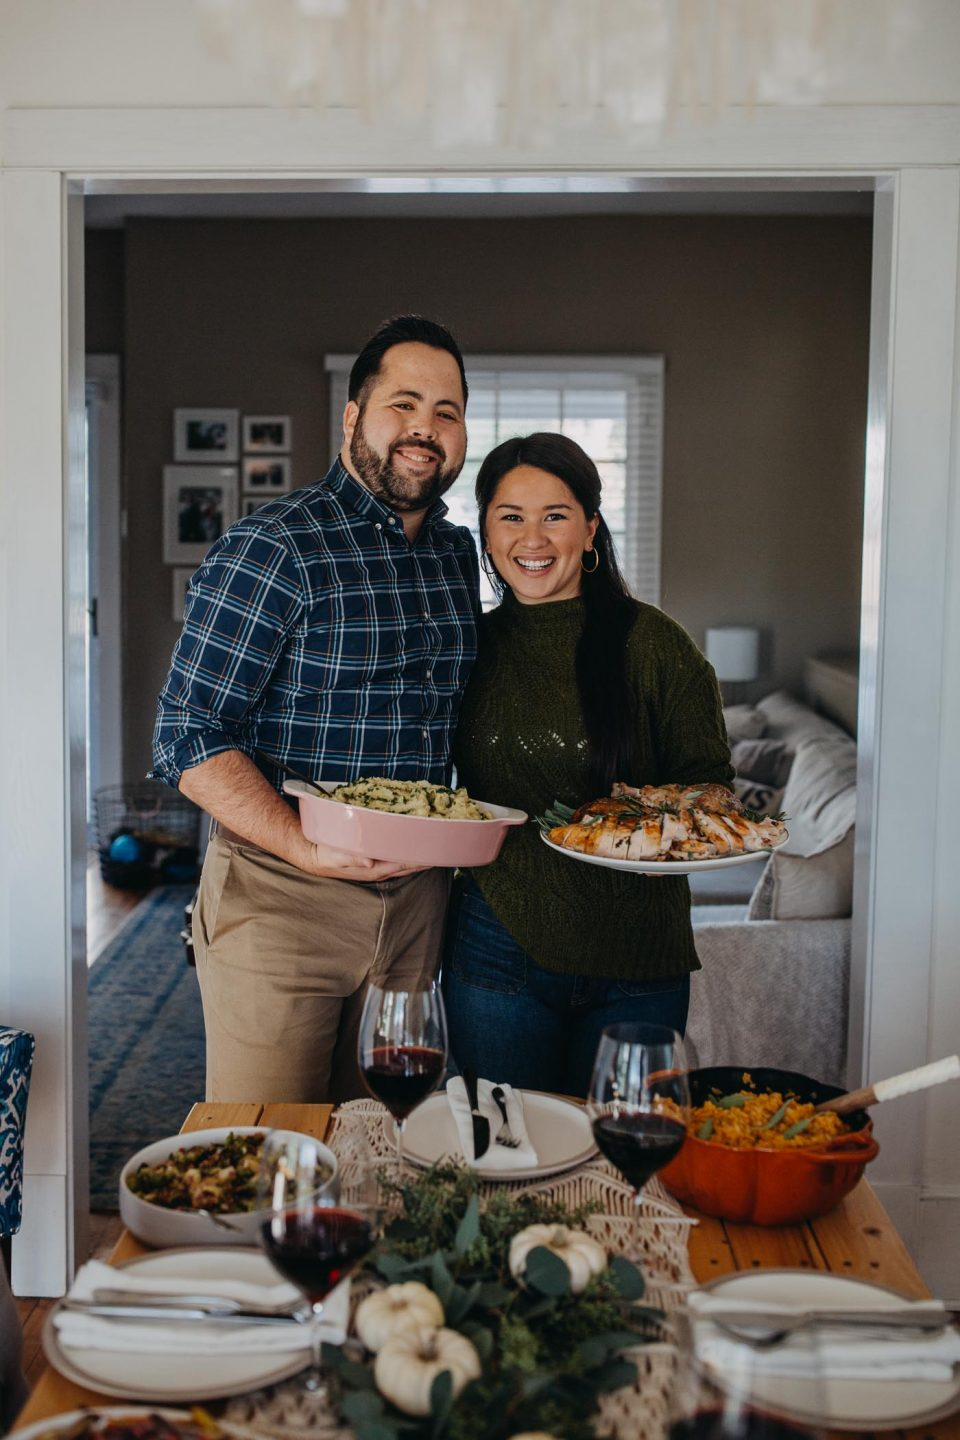 Dark-haired woman in a green sweater holds a plate of carved turkey. Dark-haired man in a blue plaid shirt holds a pink casserole dish filled with buttermilk mashed potatoes. They stand side-by-side in front of a festive tablescape & a full Thanksgiving dinner spread.